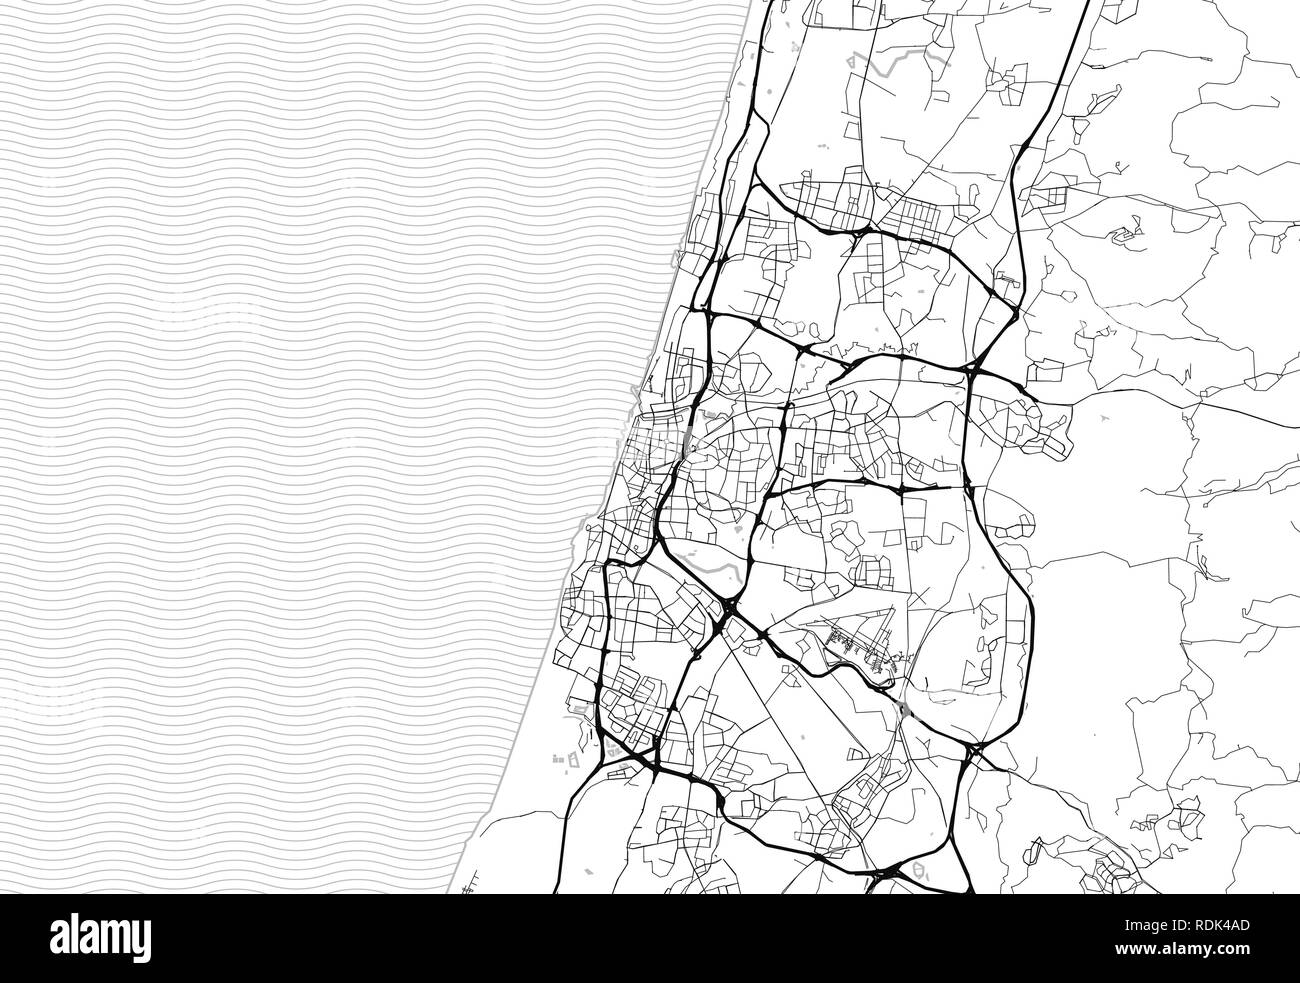 Area map of Tel Aviv, Israel. This artmap of Tel Aviv contains geography lines for land mass, water, major and minor roads. - Stock Image